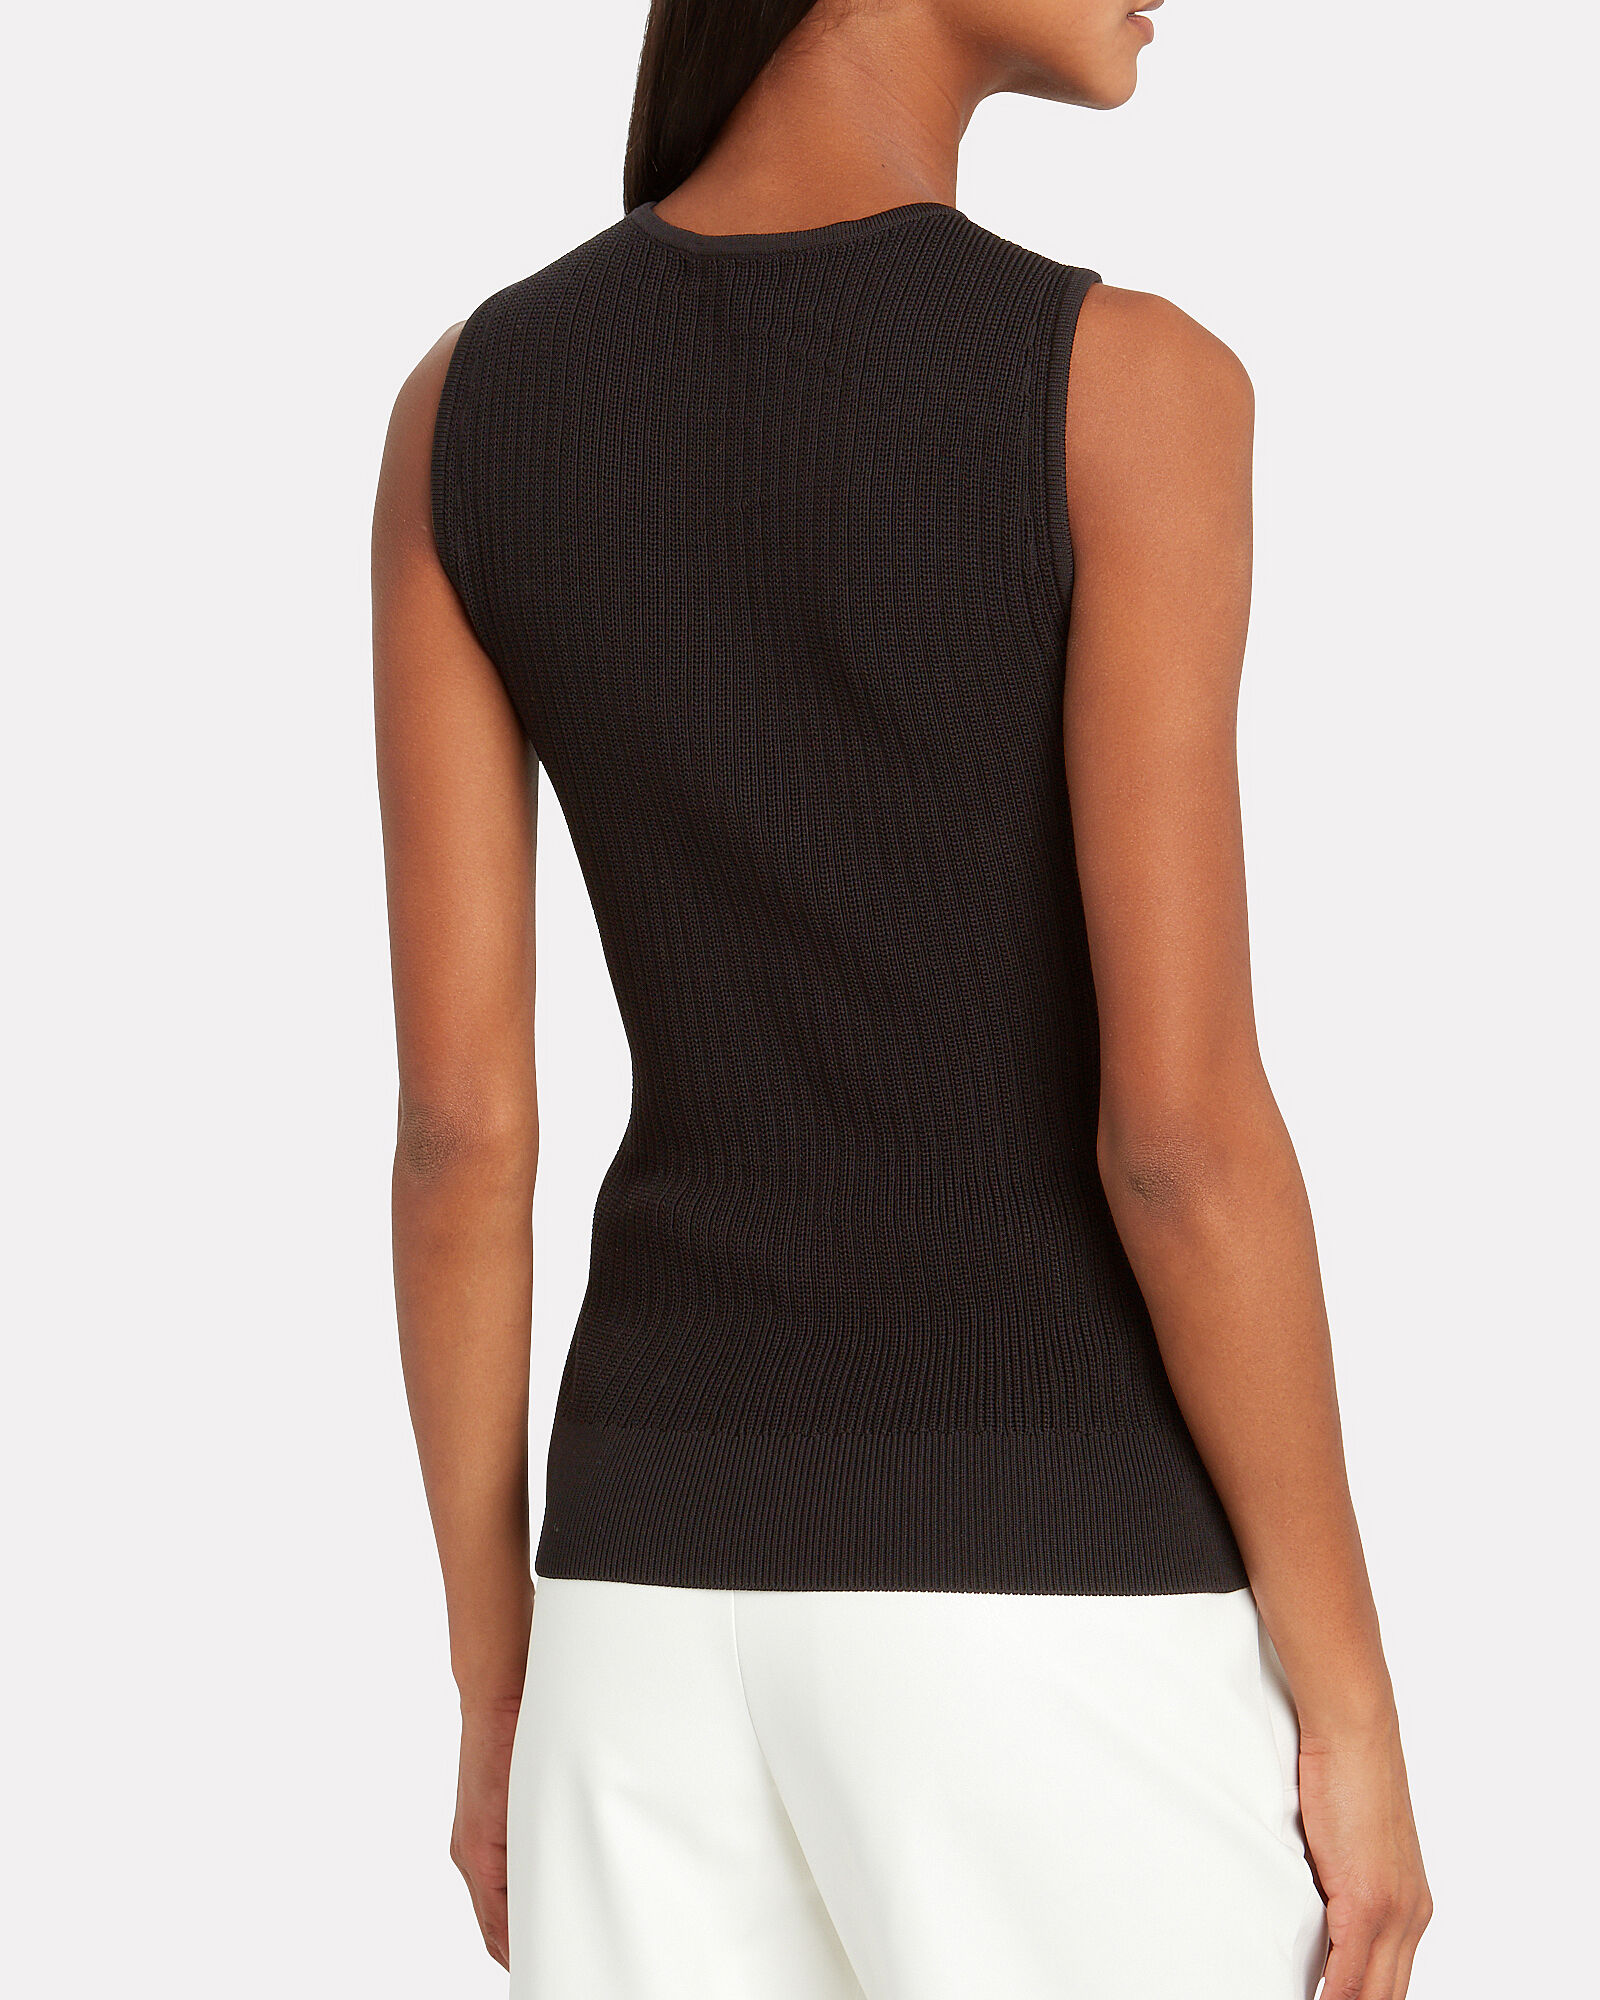 Crossover Rib Knit Tank Top, BLACK, hi-res